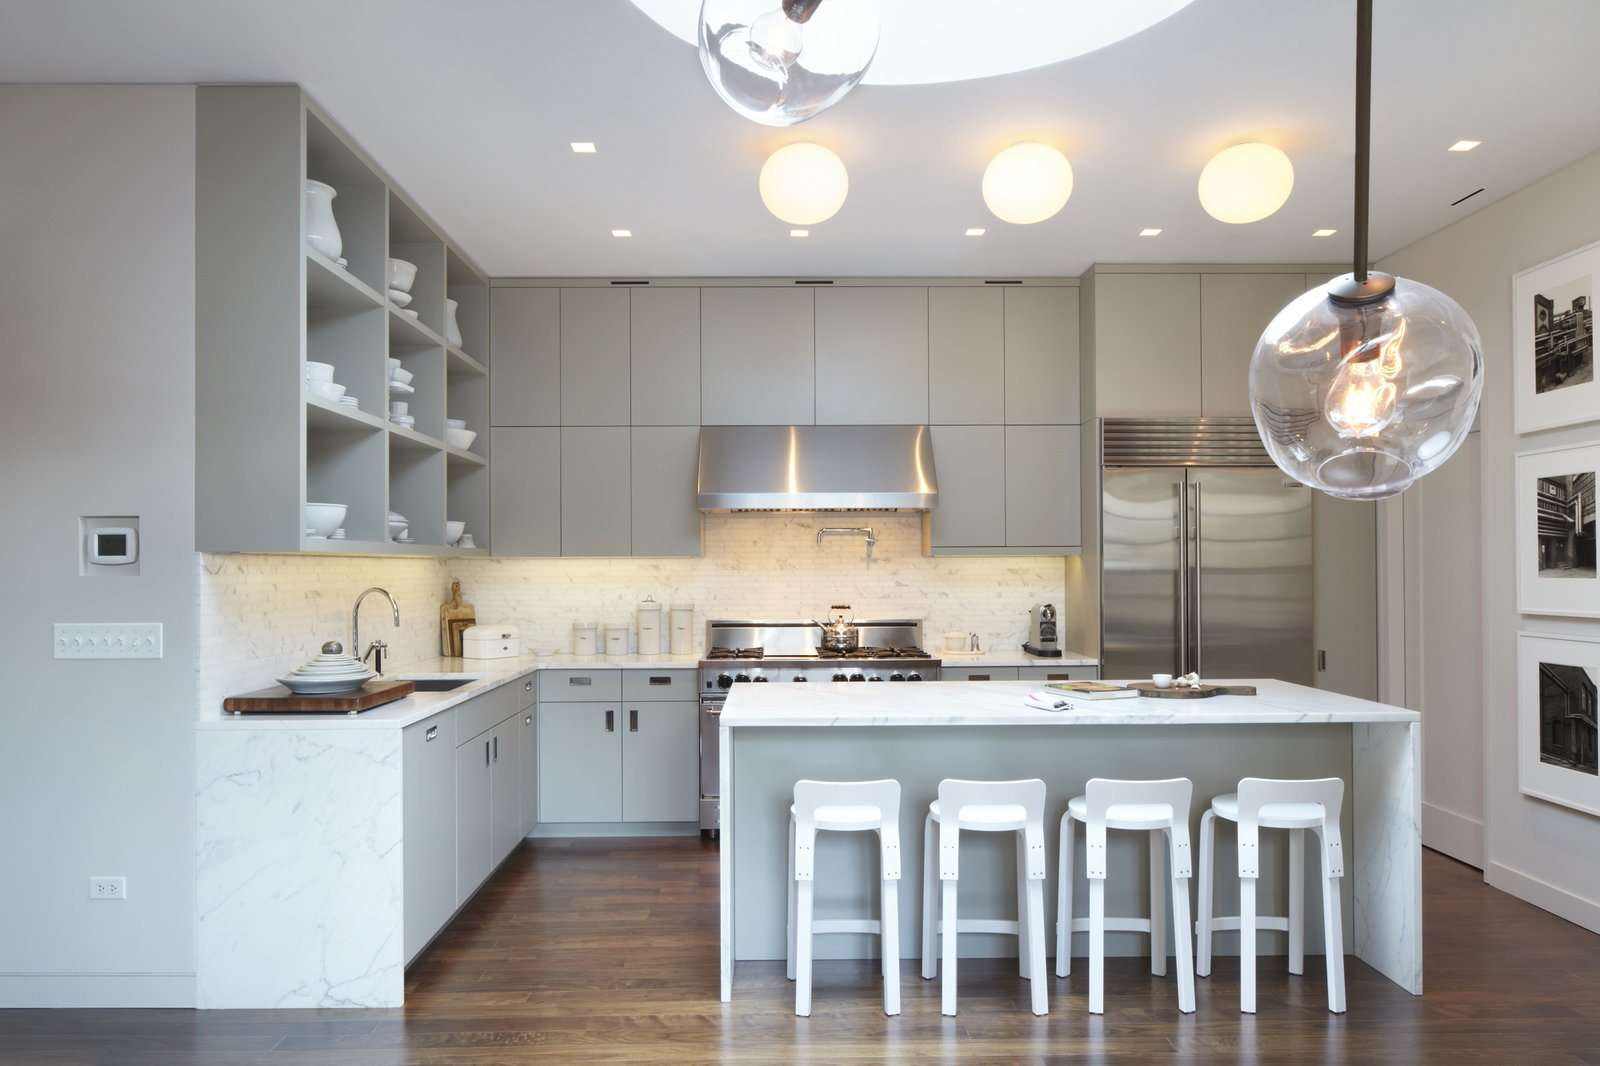 An overall photo of the kitchen with the Bernd and Hilla Becher photograph series on the right.  The drum skylight can be seen above and in the foreground are branches of a Lindsey Adelman pendant which hangs over the dining table.